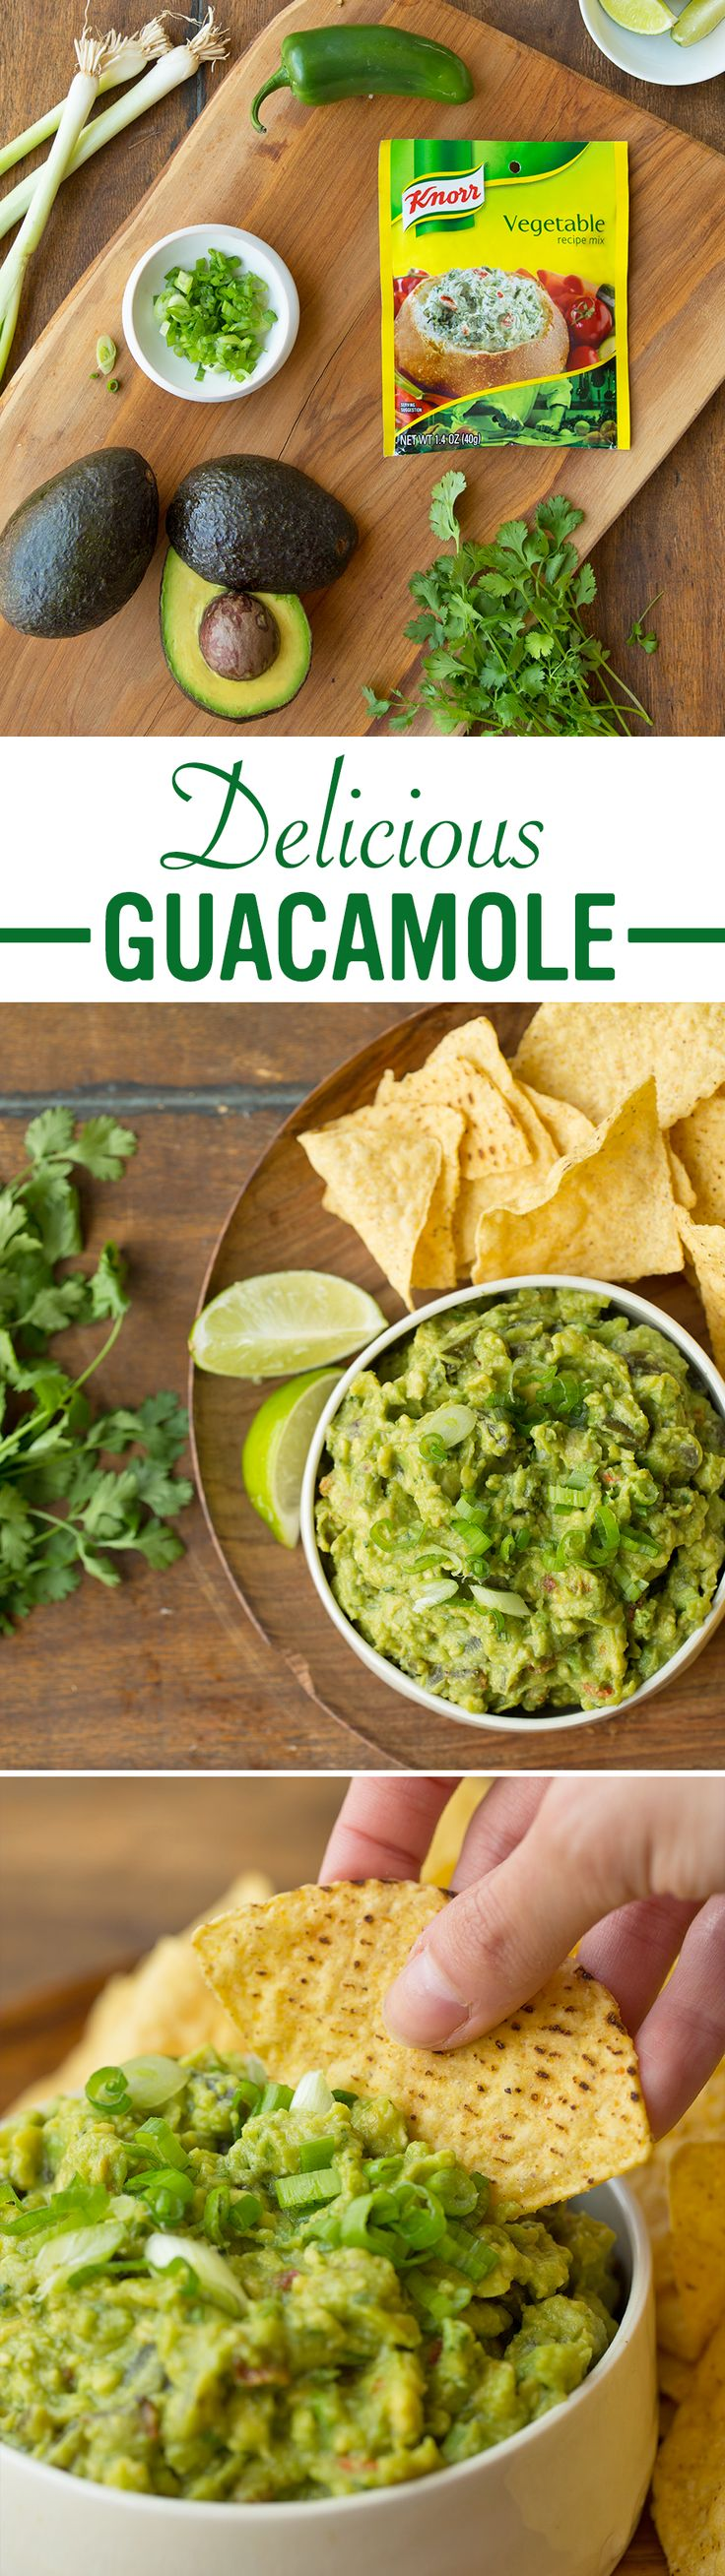 The best recipe for homemade Vegetable Guacamole is easy, delicious, and takes less than 30 minutes (half an hour) to make! 1. Combine medium mashed avocados, a cup of coarsely chopped canned jalapeno peppers, tablespoons of fresh cilantro, lime juice, and a package of Knorr® Vegetable recipe mix in a small bowl 2. Chill and garnish with diced green onion 3. Serve with tortilla chips or your favorite dippers.